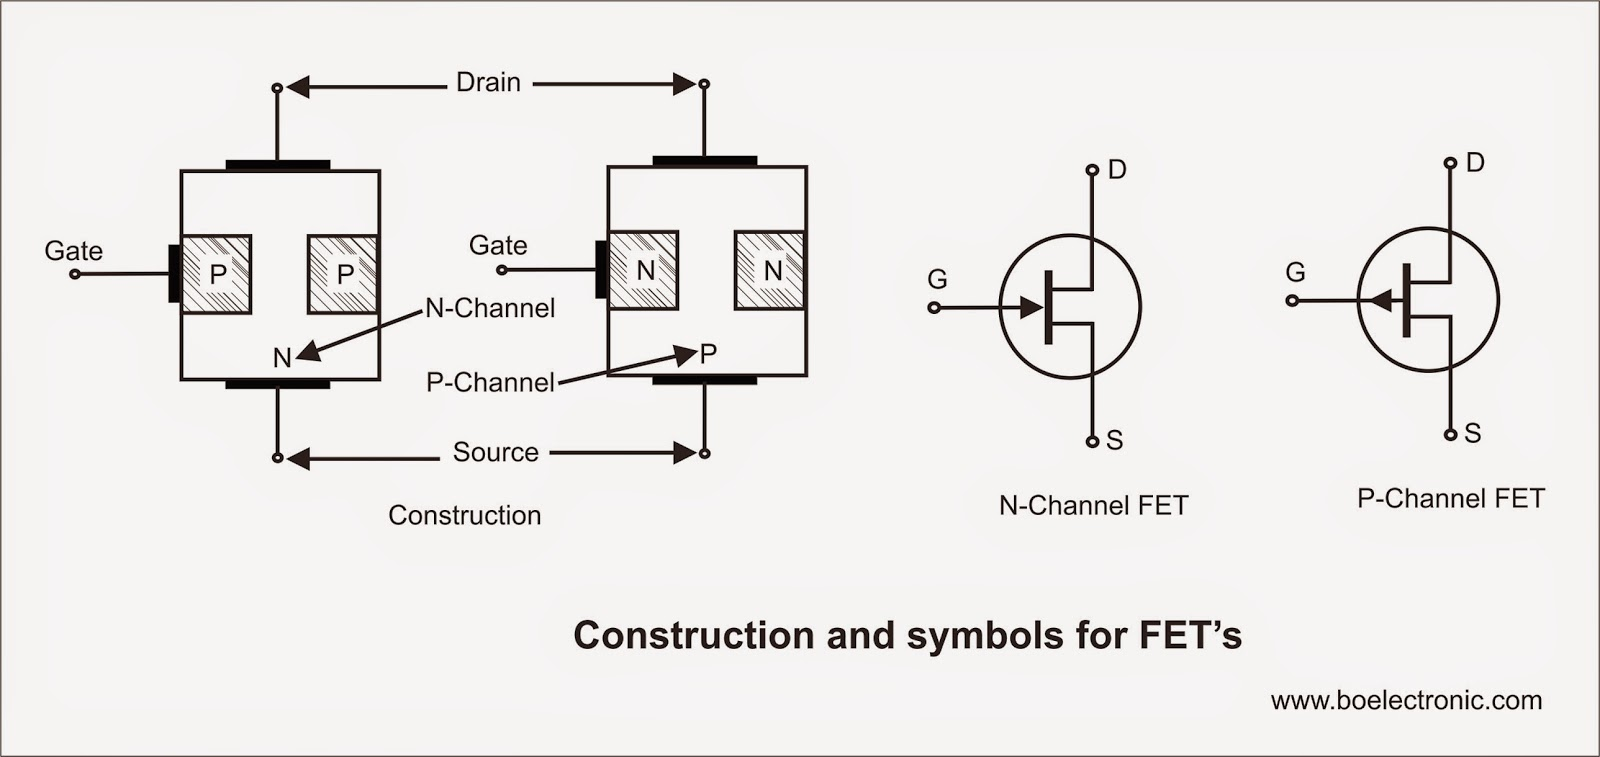 n channel fet schematic symbol the wiring diagram n channel fet schematic symbol vidim wiring diagram schematic